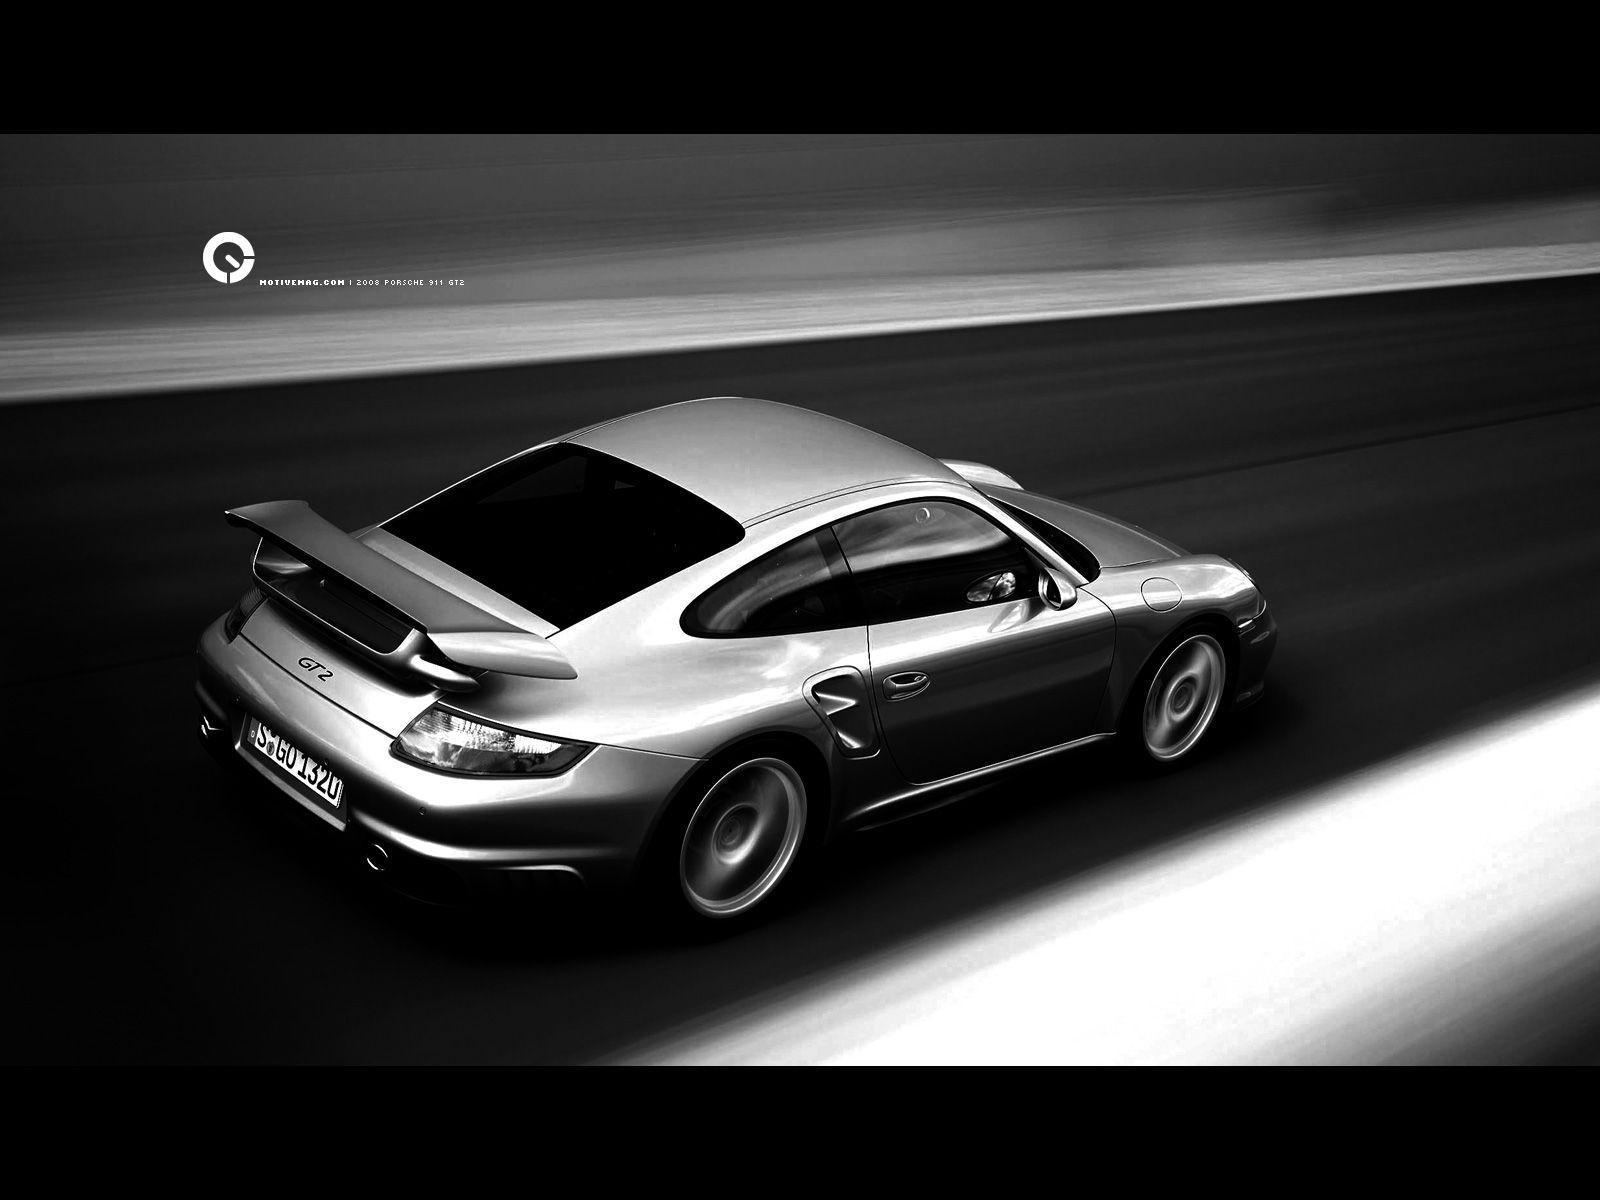 Porsche 911 Wallpapers 01 | WallPaper Glow